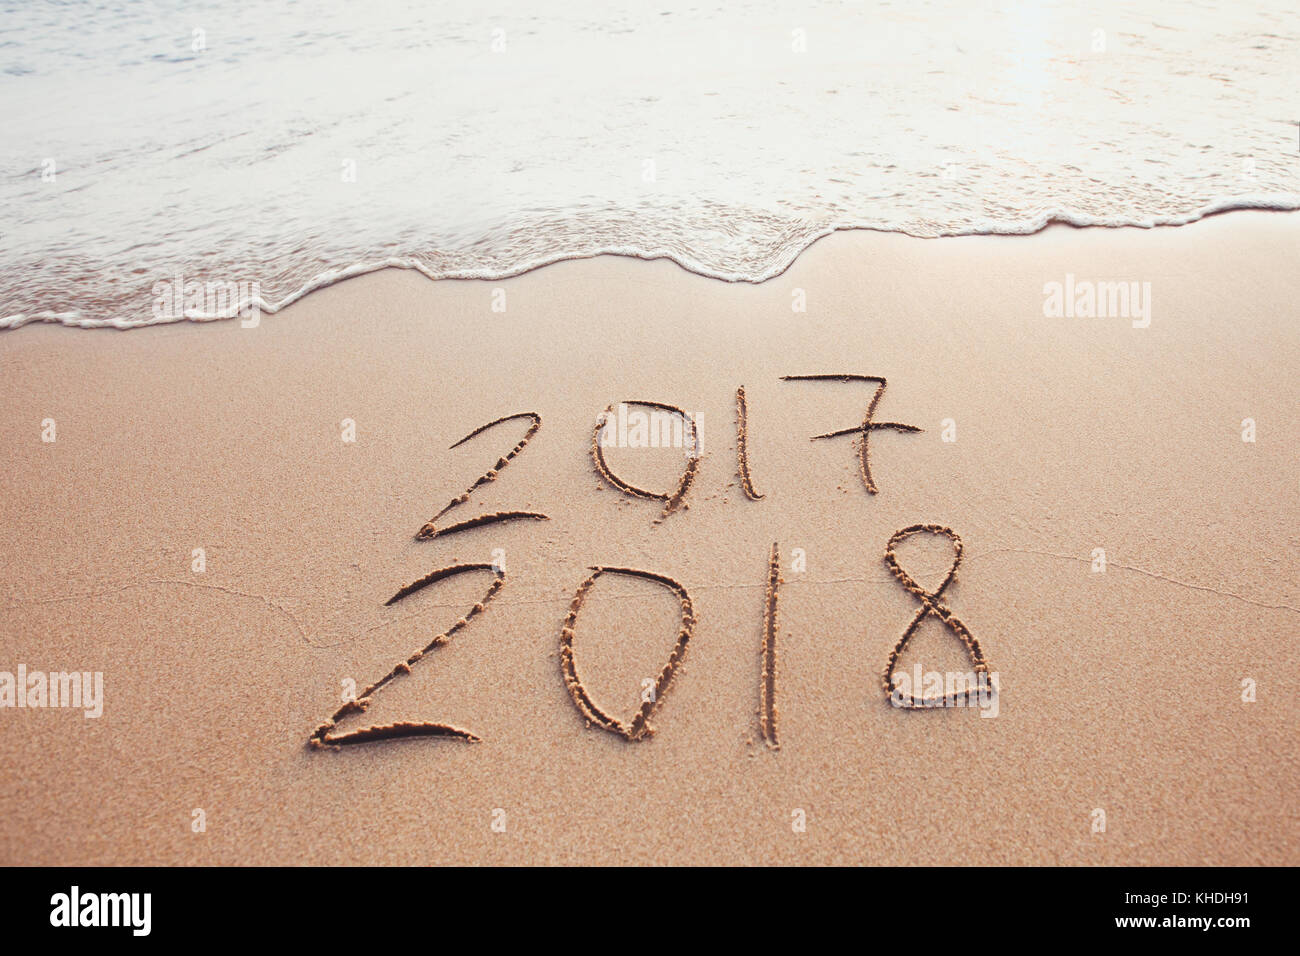 new year change 2017 to 2018, calendar dates written on the sand of beach - Stock Image